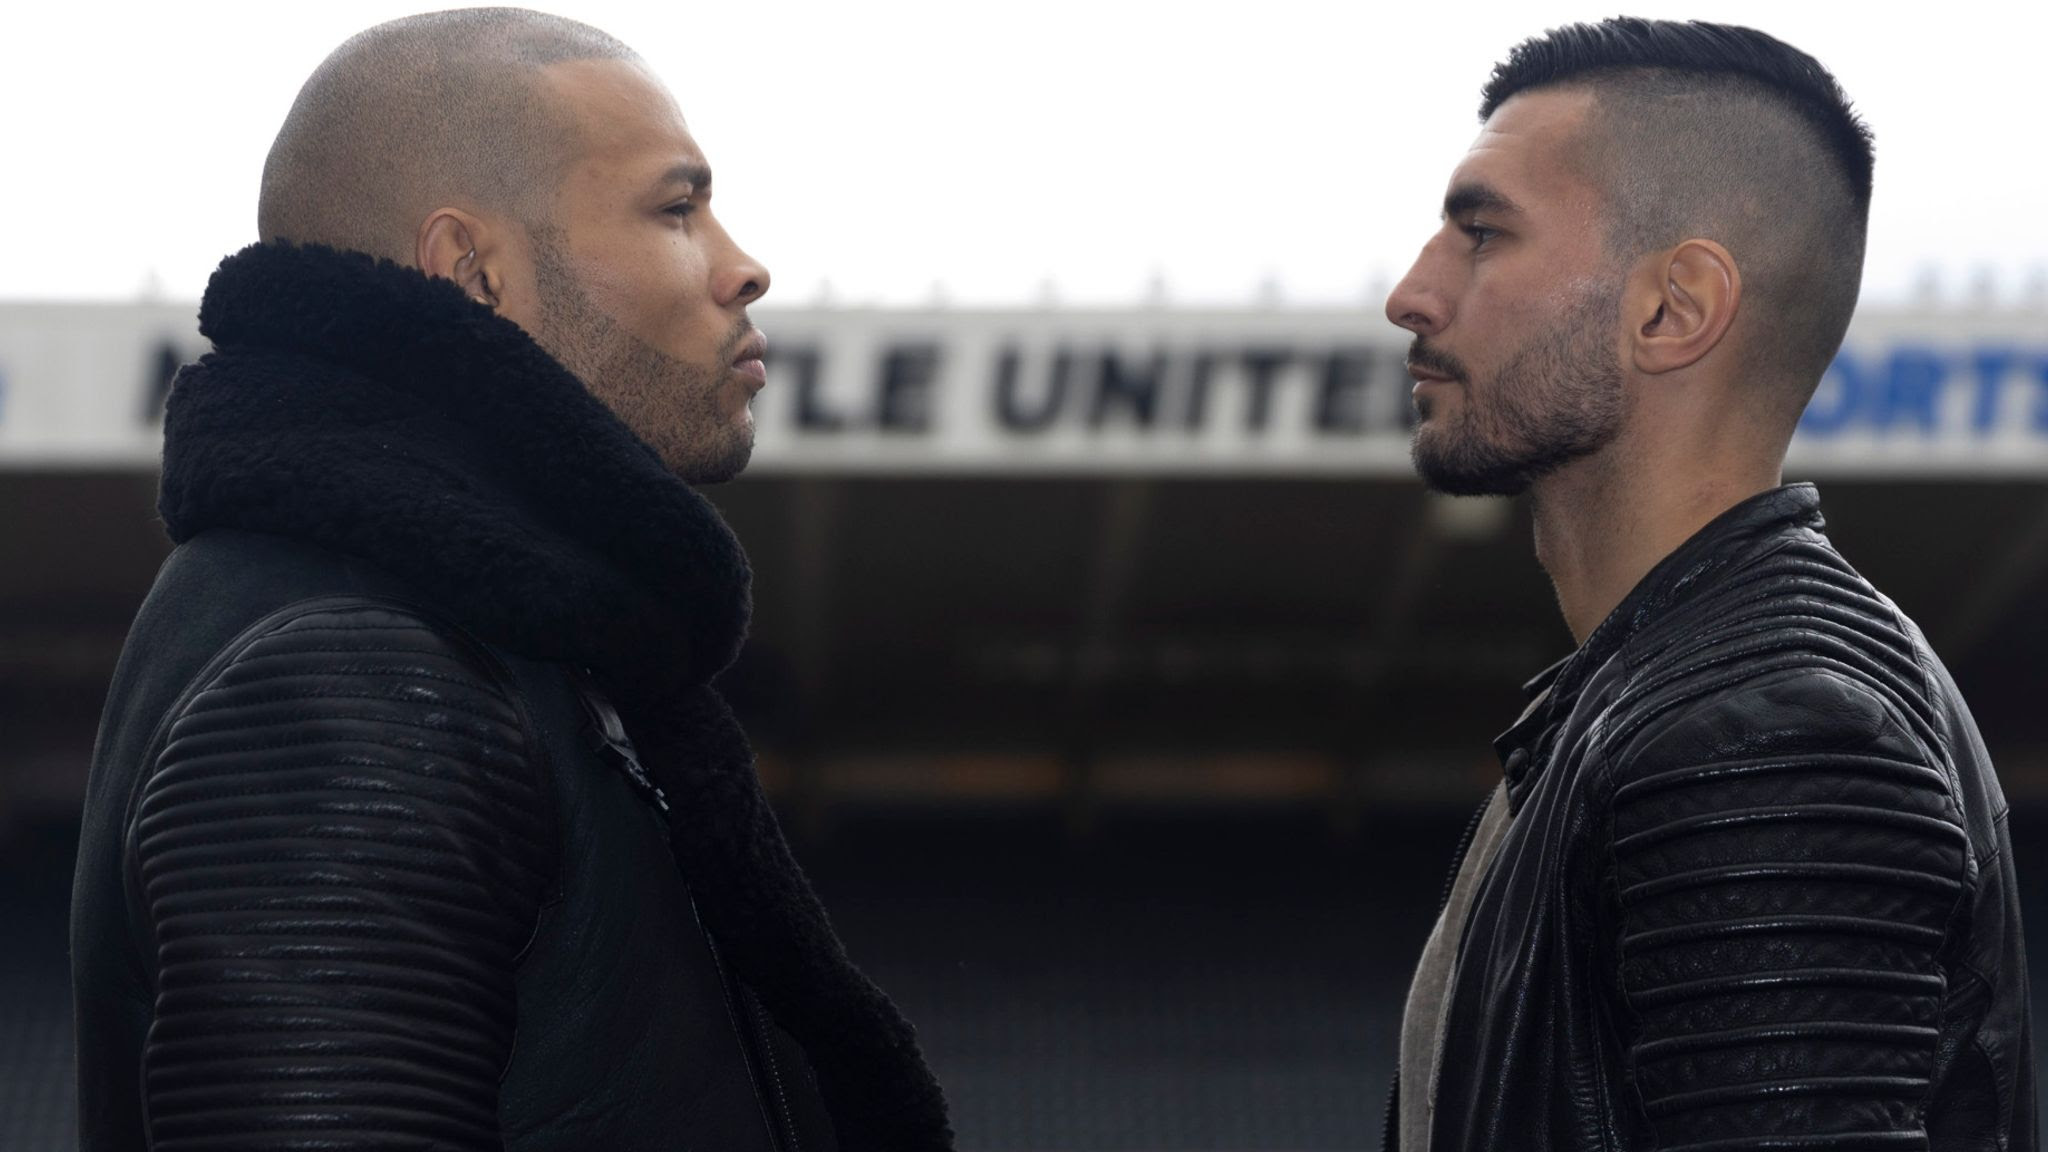 Chris Eubank Jr and Wanik Awdijan in row ahead of fight: 'Why didn't you fight me the first time?'